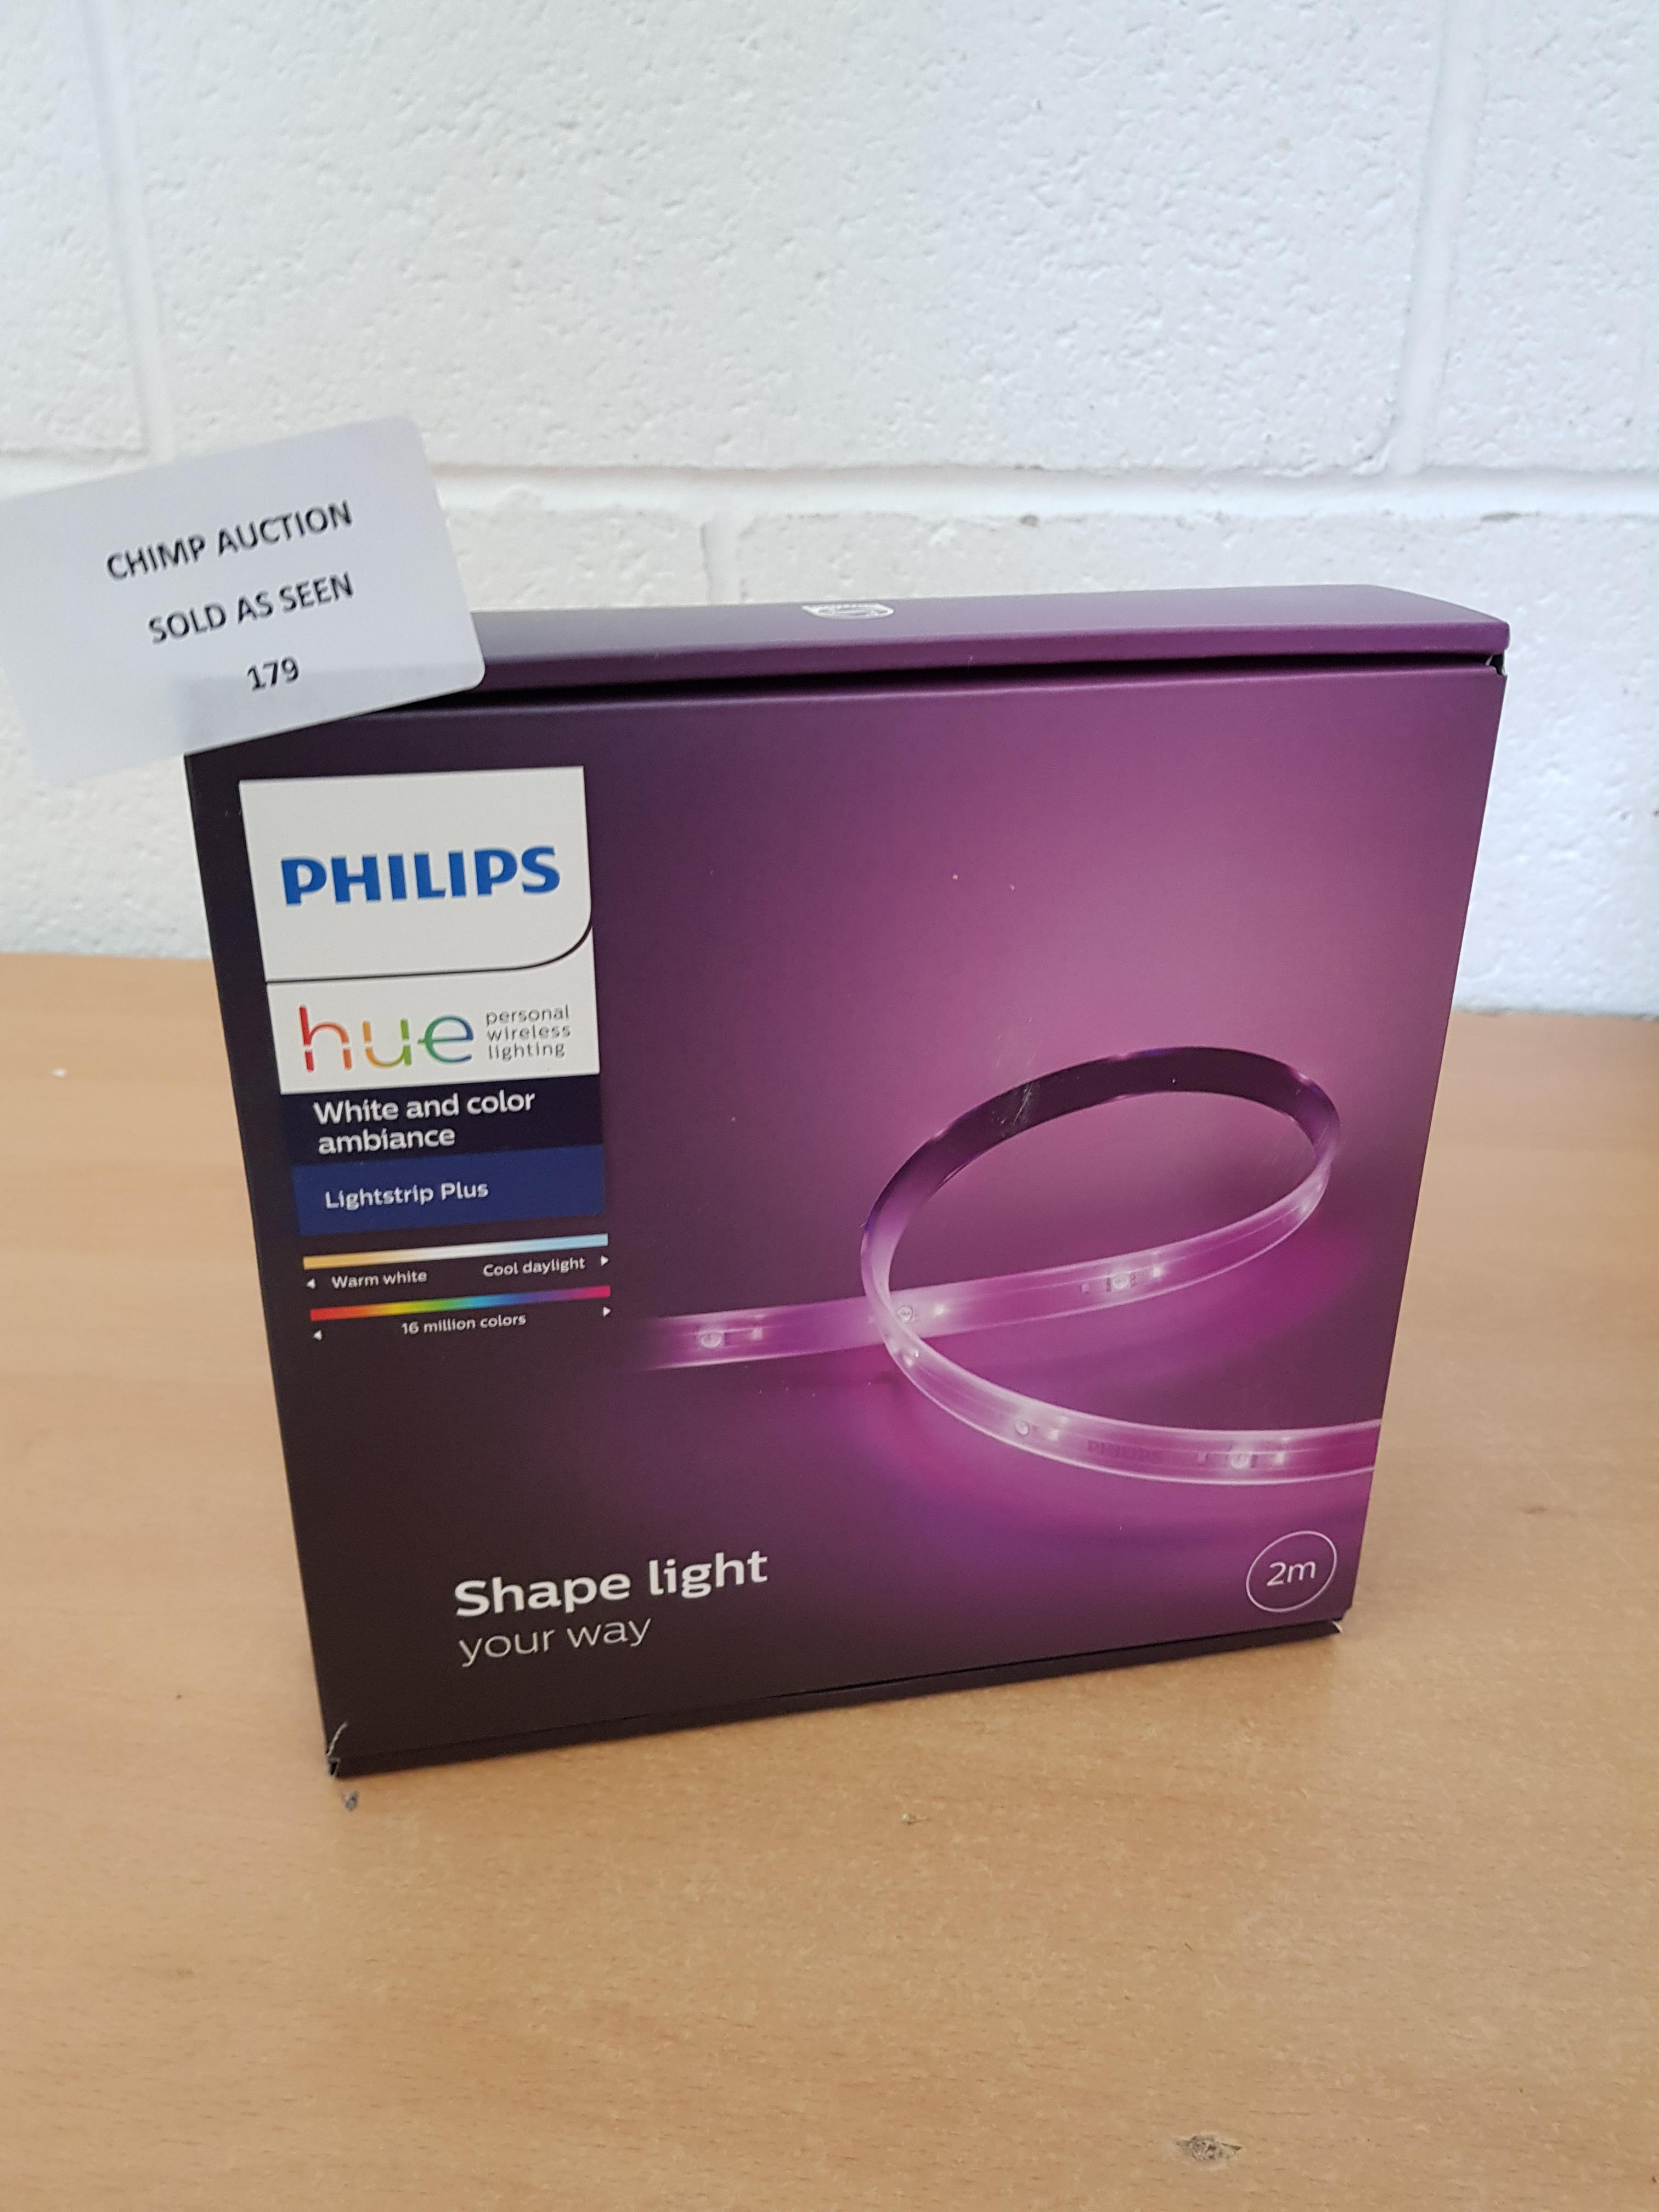 Lot 179 - Philips Hue LightStrip Plus 2 m Dimmable LED Smart Kit RRP £69.99.